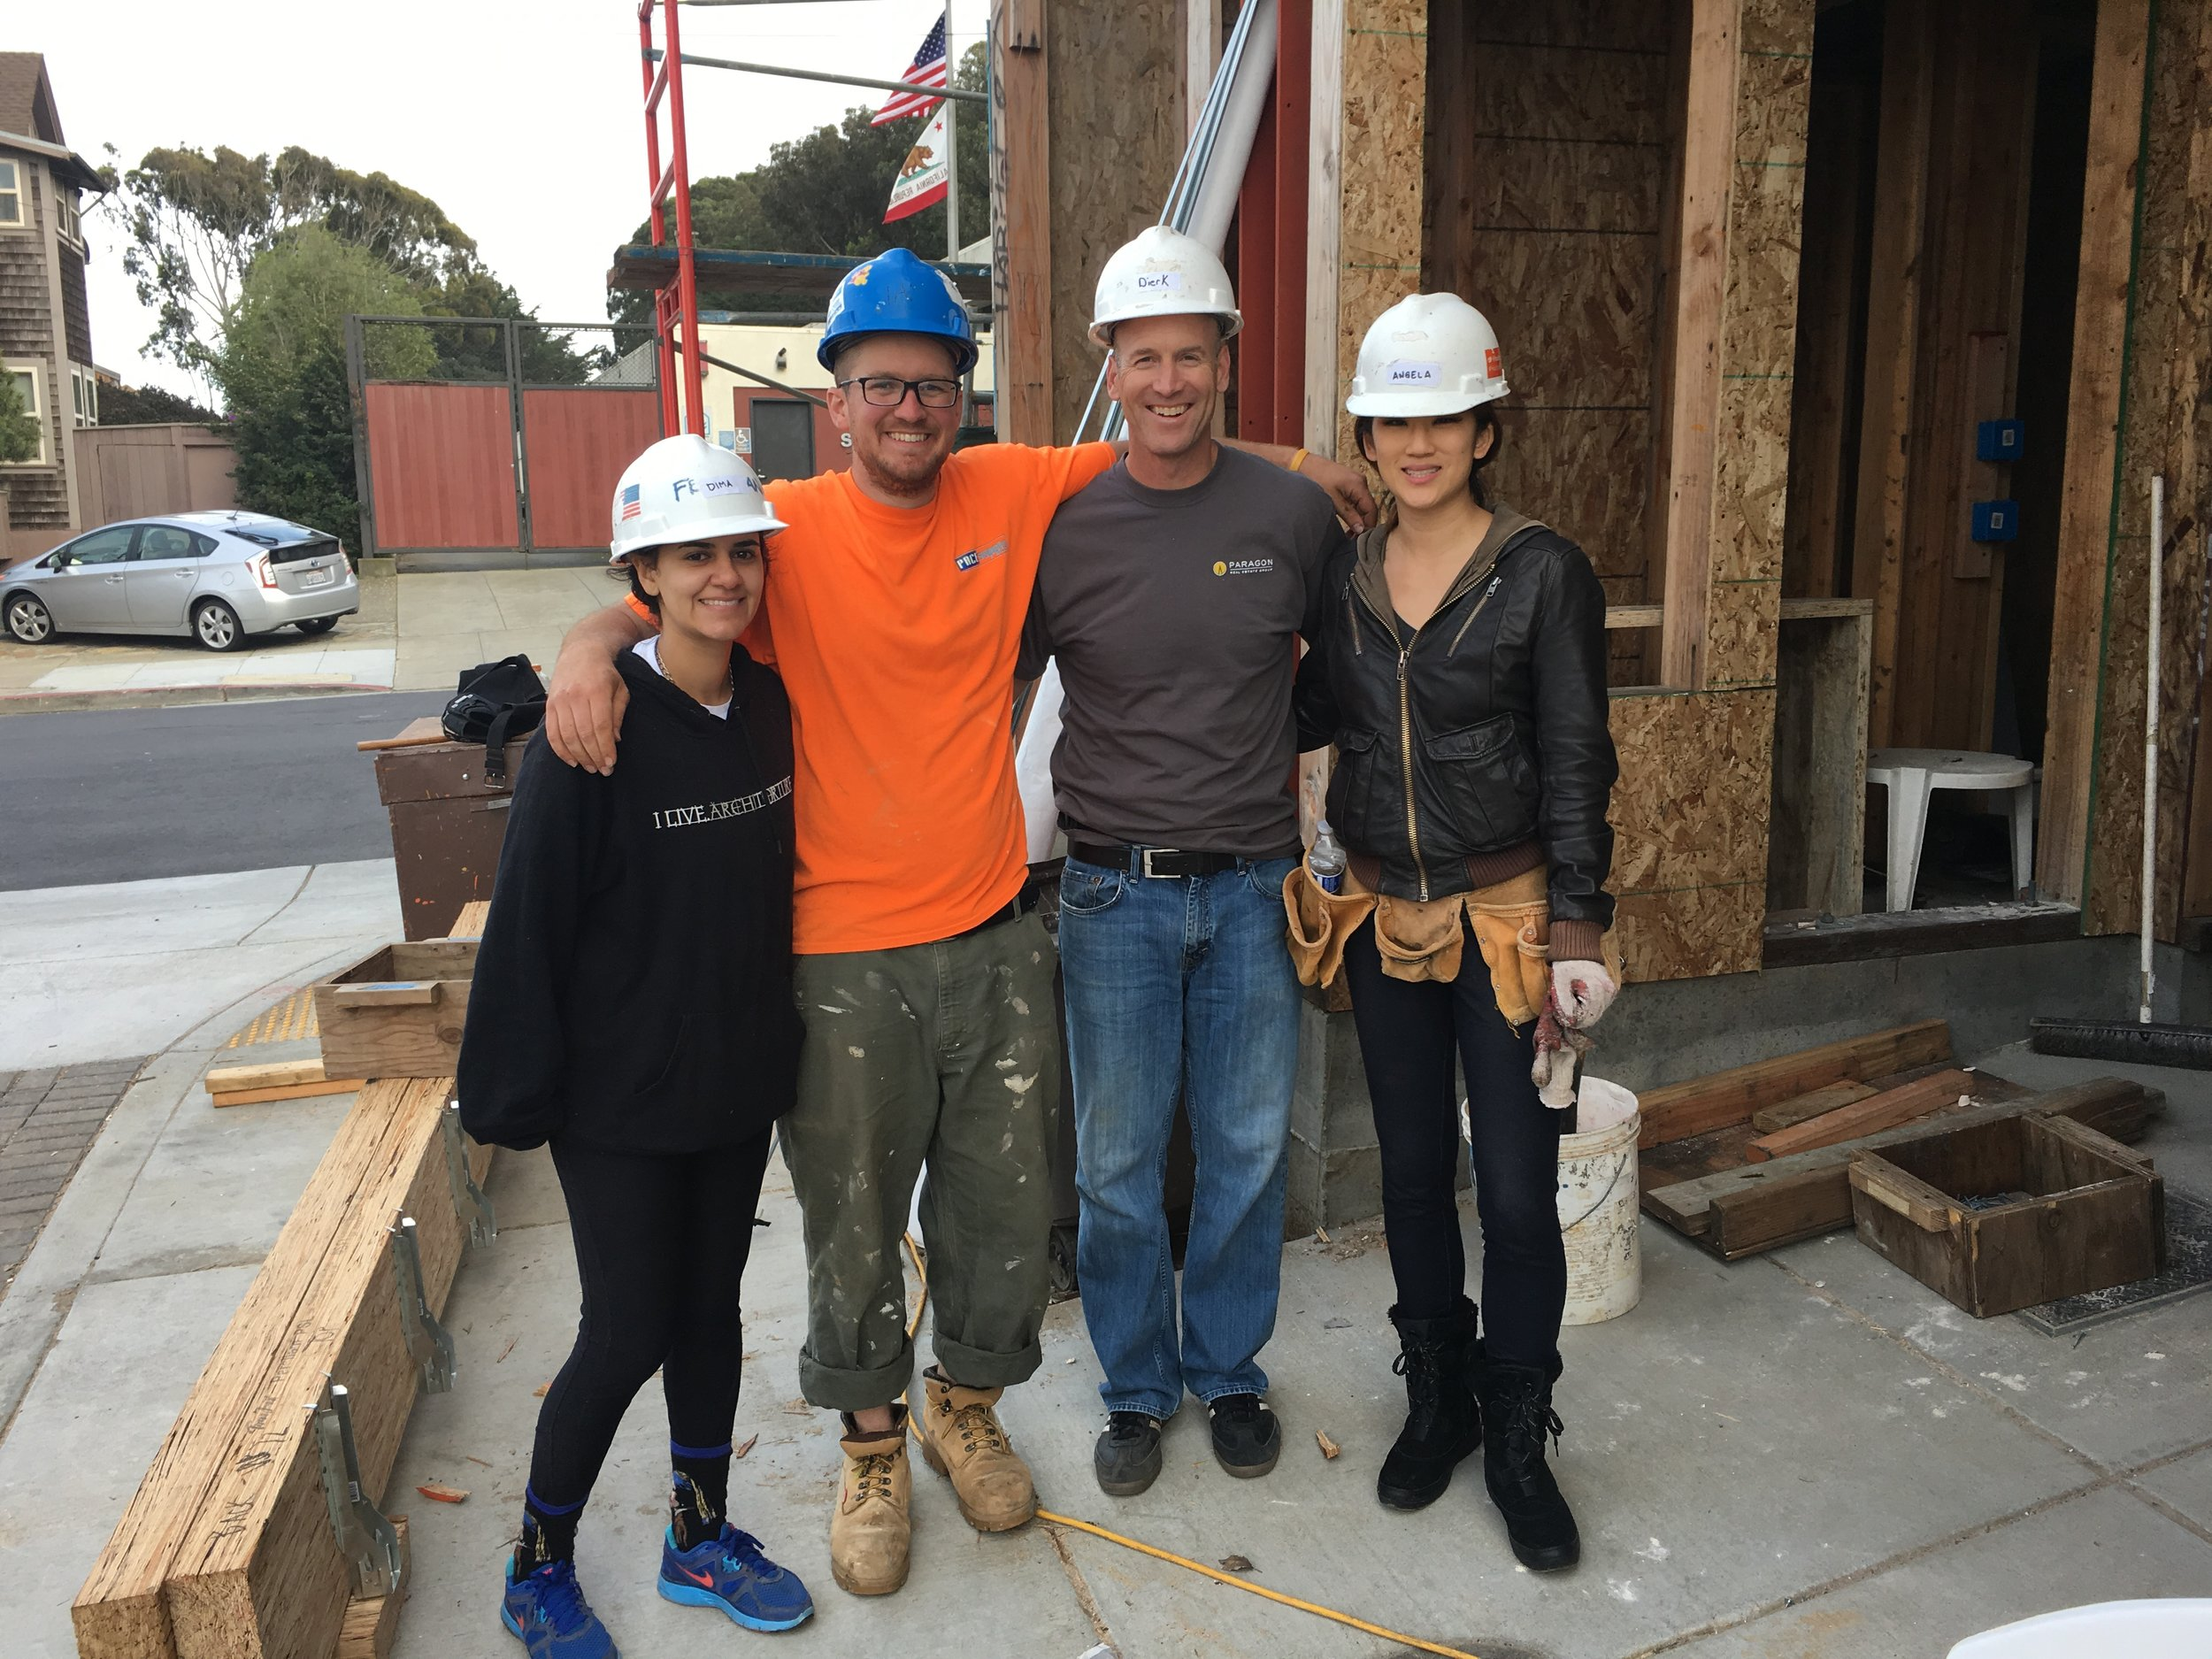 Habitat for Humanity volunteer at at Habitat Terrace, San Francisco, February 2016  Shout out to the roof team